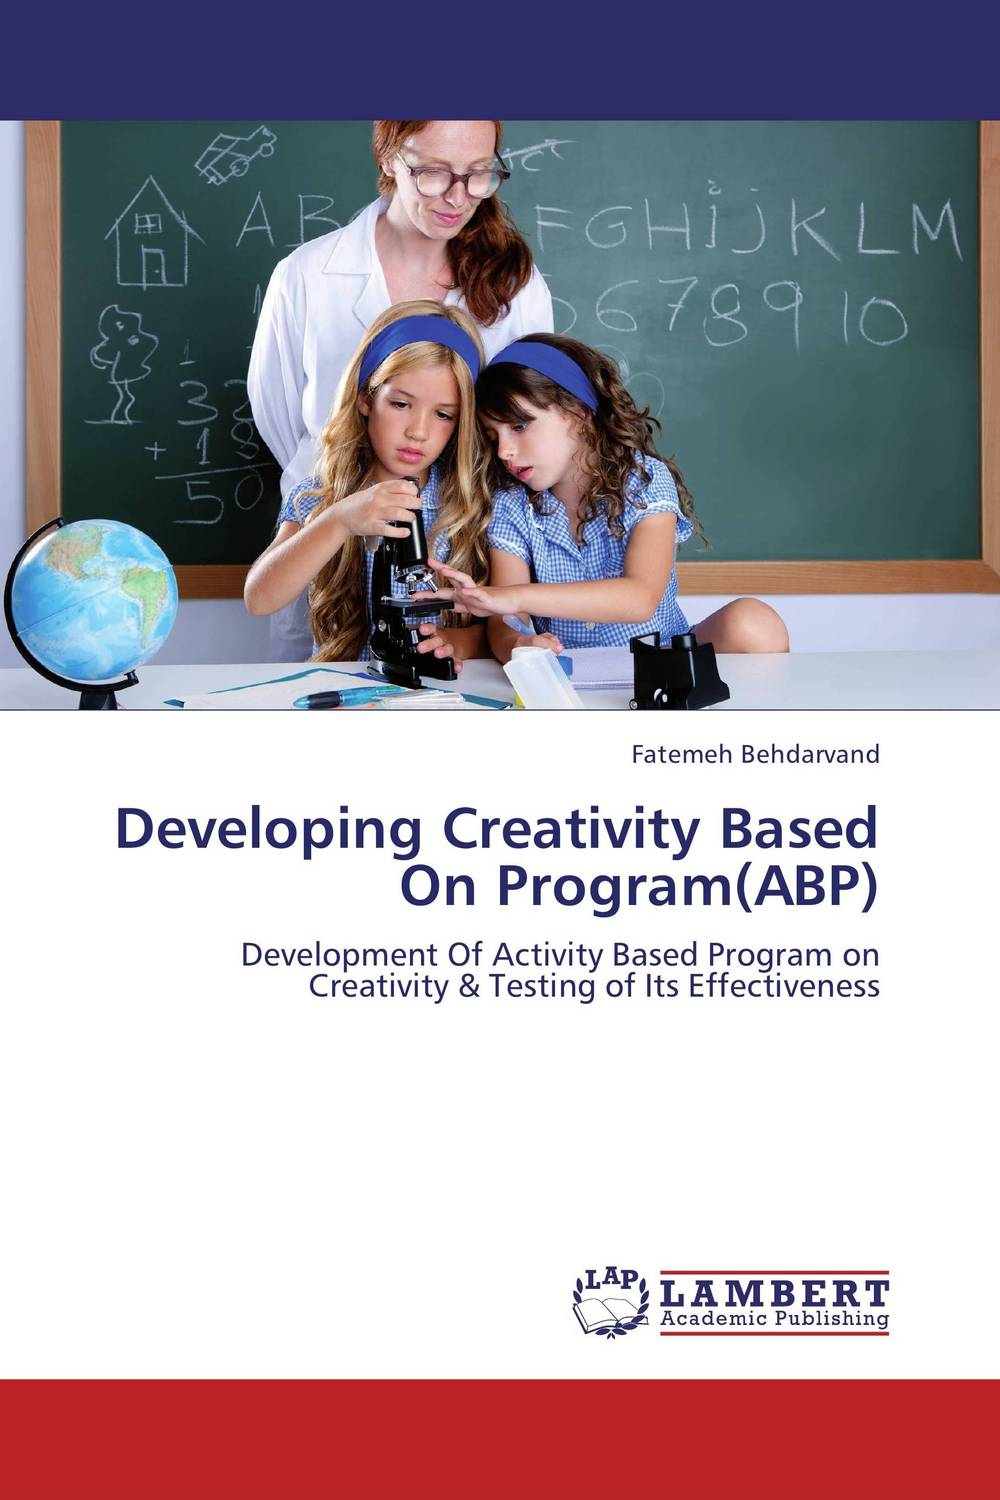 Developing Creativity Based On Program(ABP) facilitating increased creativity for adults